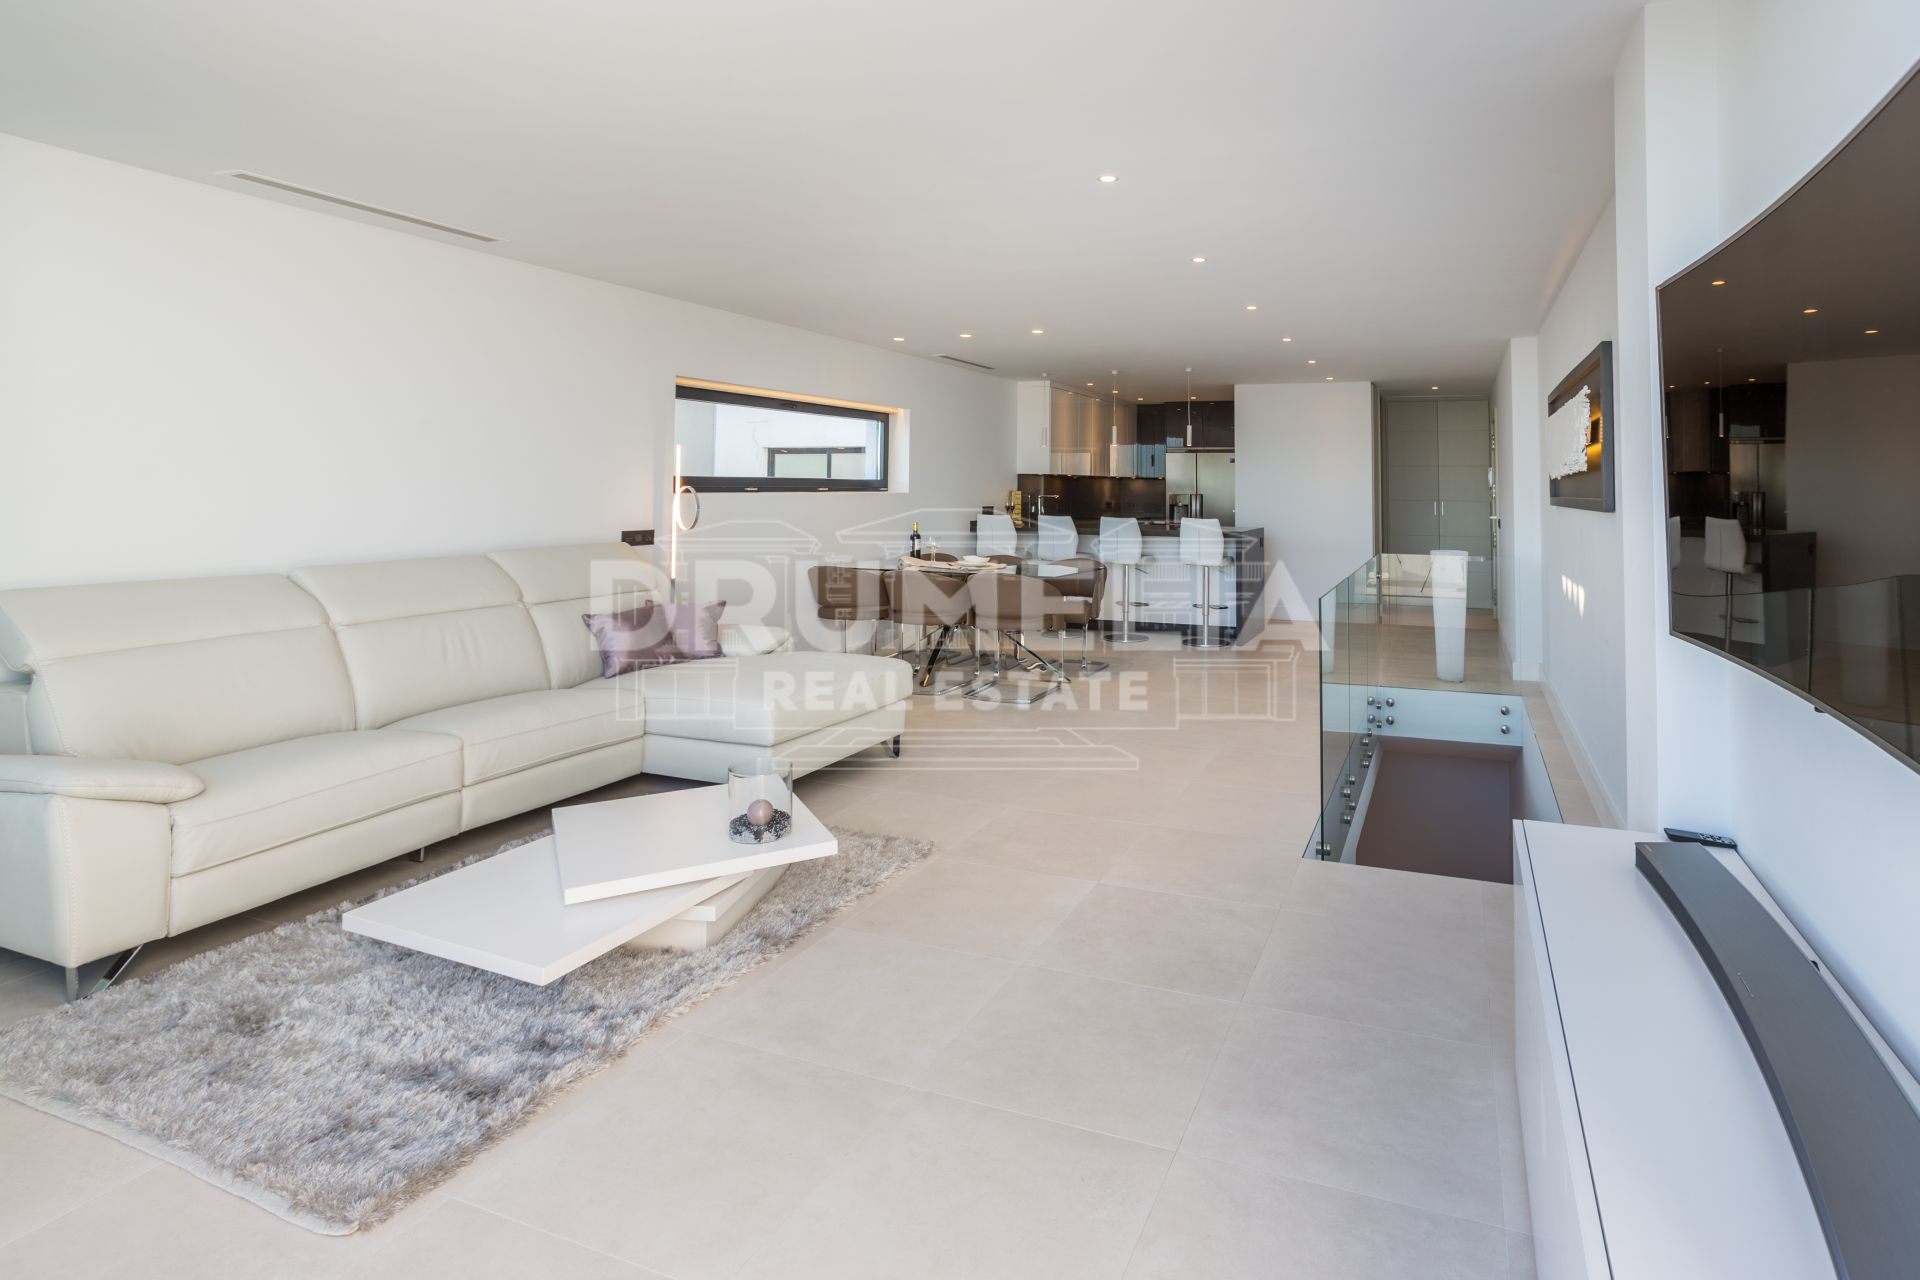 Marbella - Puerto Banus, Unique High-end Contemporary Duplex Penthouse, Marbella - Puerto Banus, Marbella